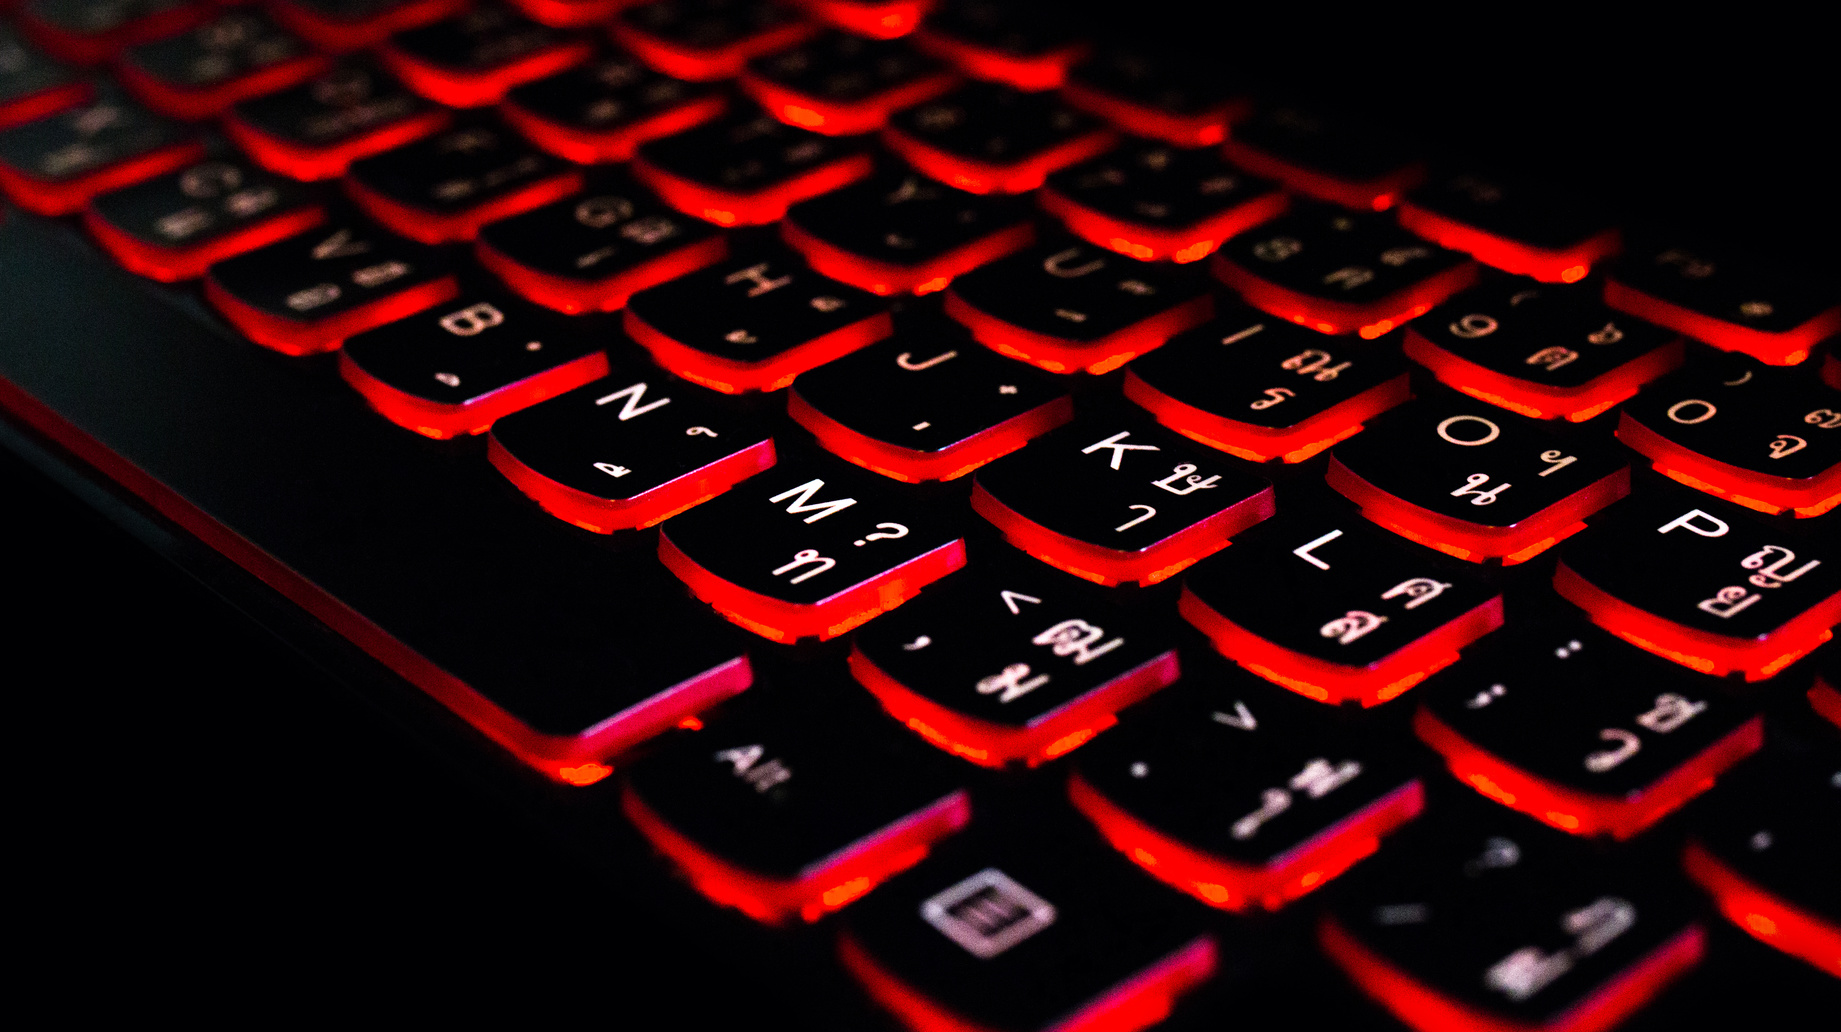 Backlit Keyboards